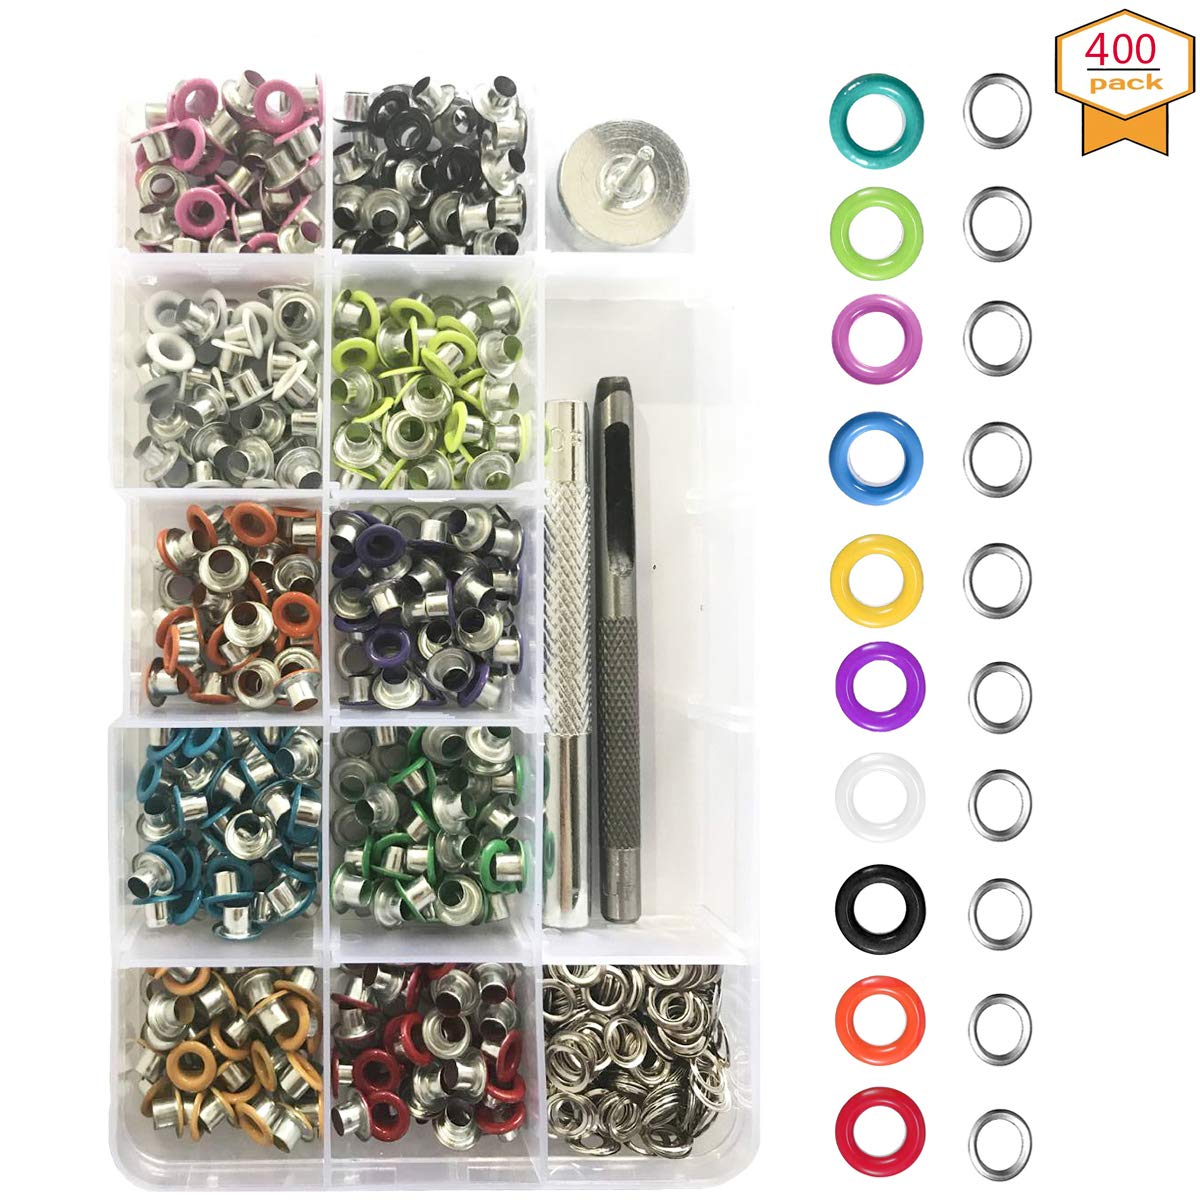 Grommets Kit 1/5 inch, 400 Sets Multi-Color Grommets Kit Metal Eyelets with Installation Tools for Canvas Shoes Clothes Bags Cap Crafts by TLHOME by TLHOME